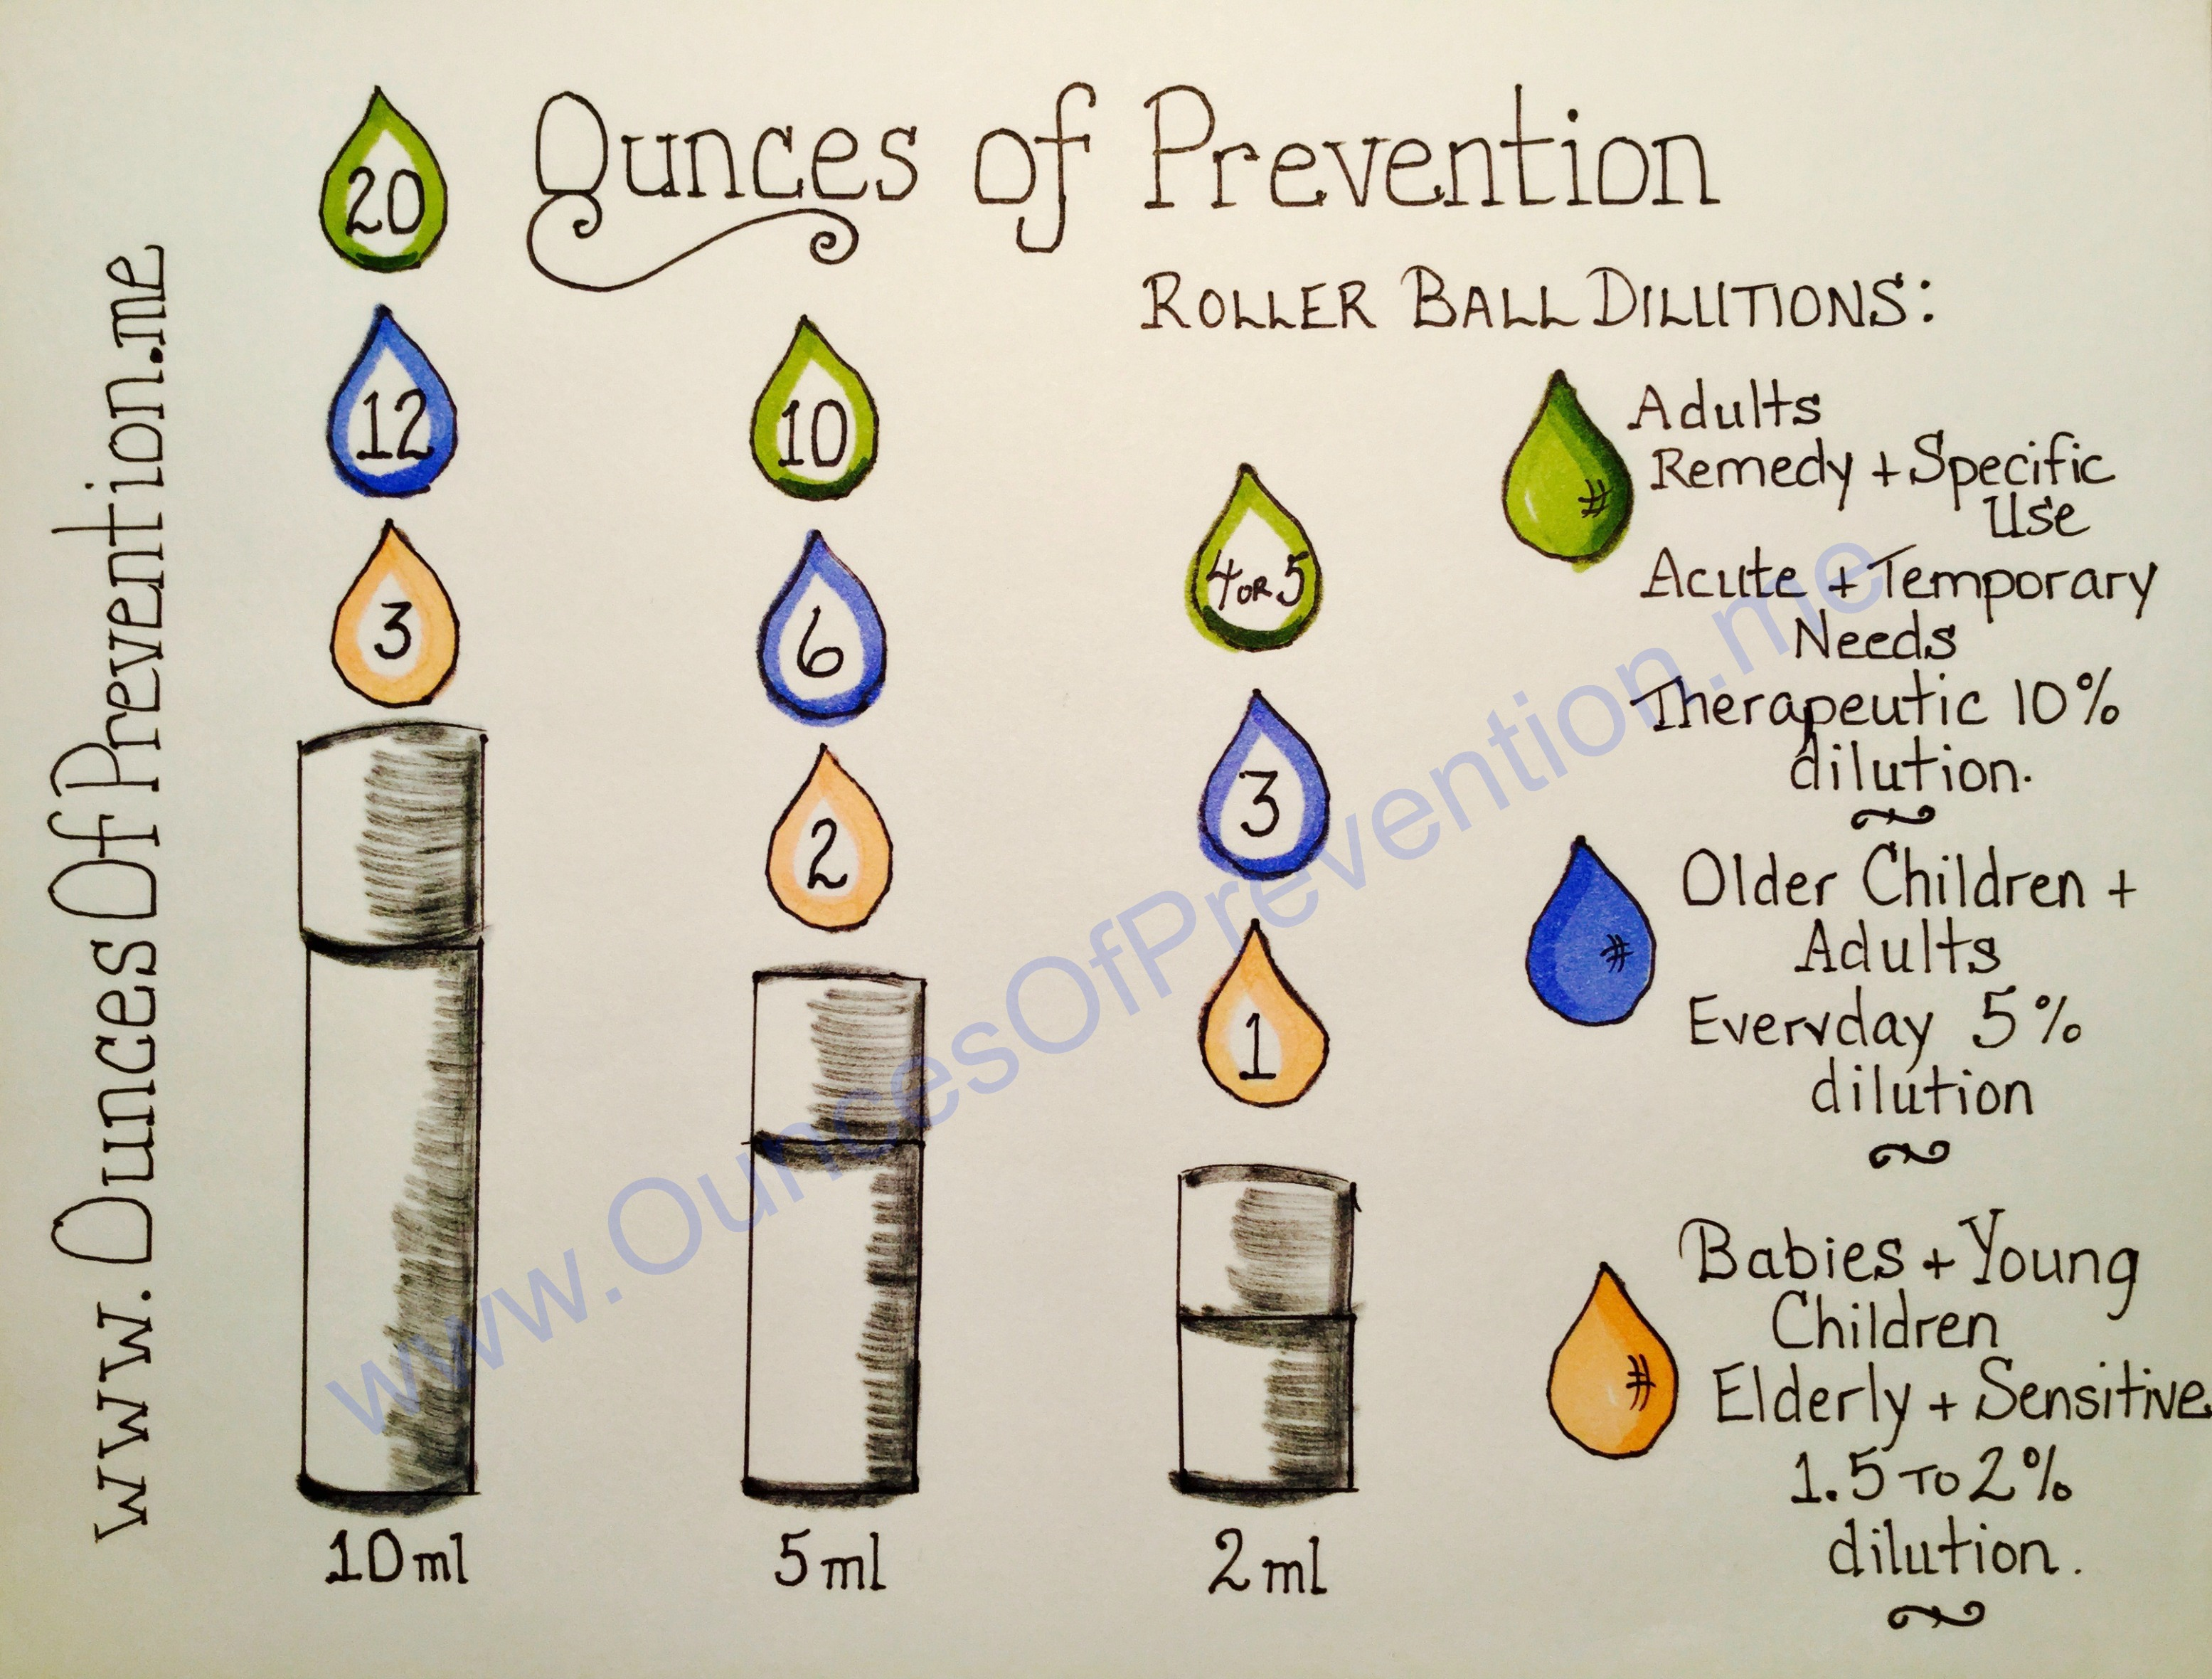 General dilution chart for various sizes of roller ball bottles also  essential oils    ounces prevention rh ouncesofprevention